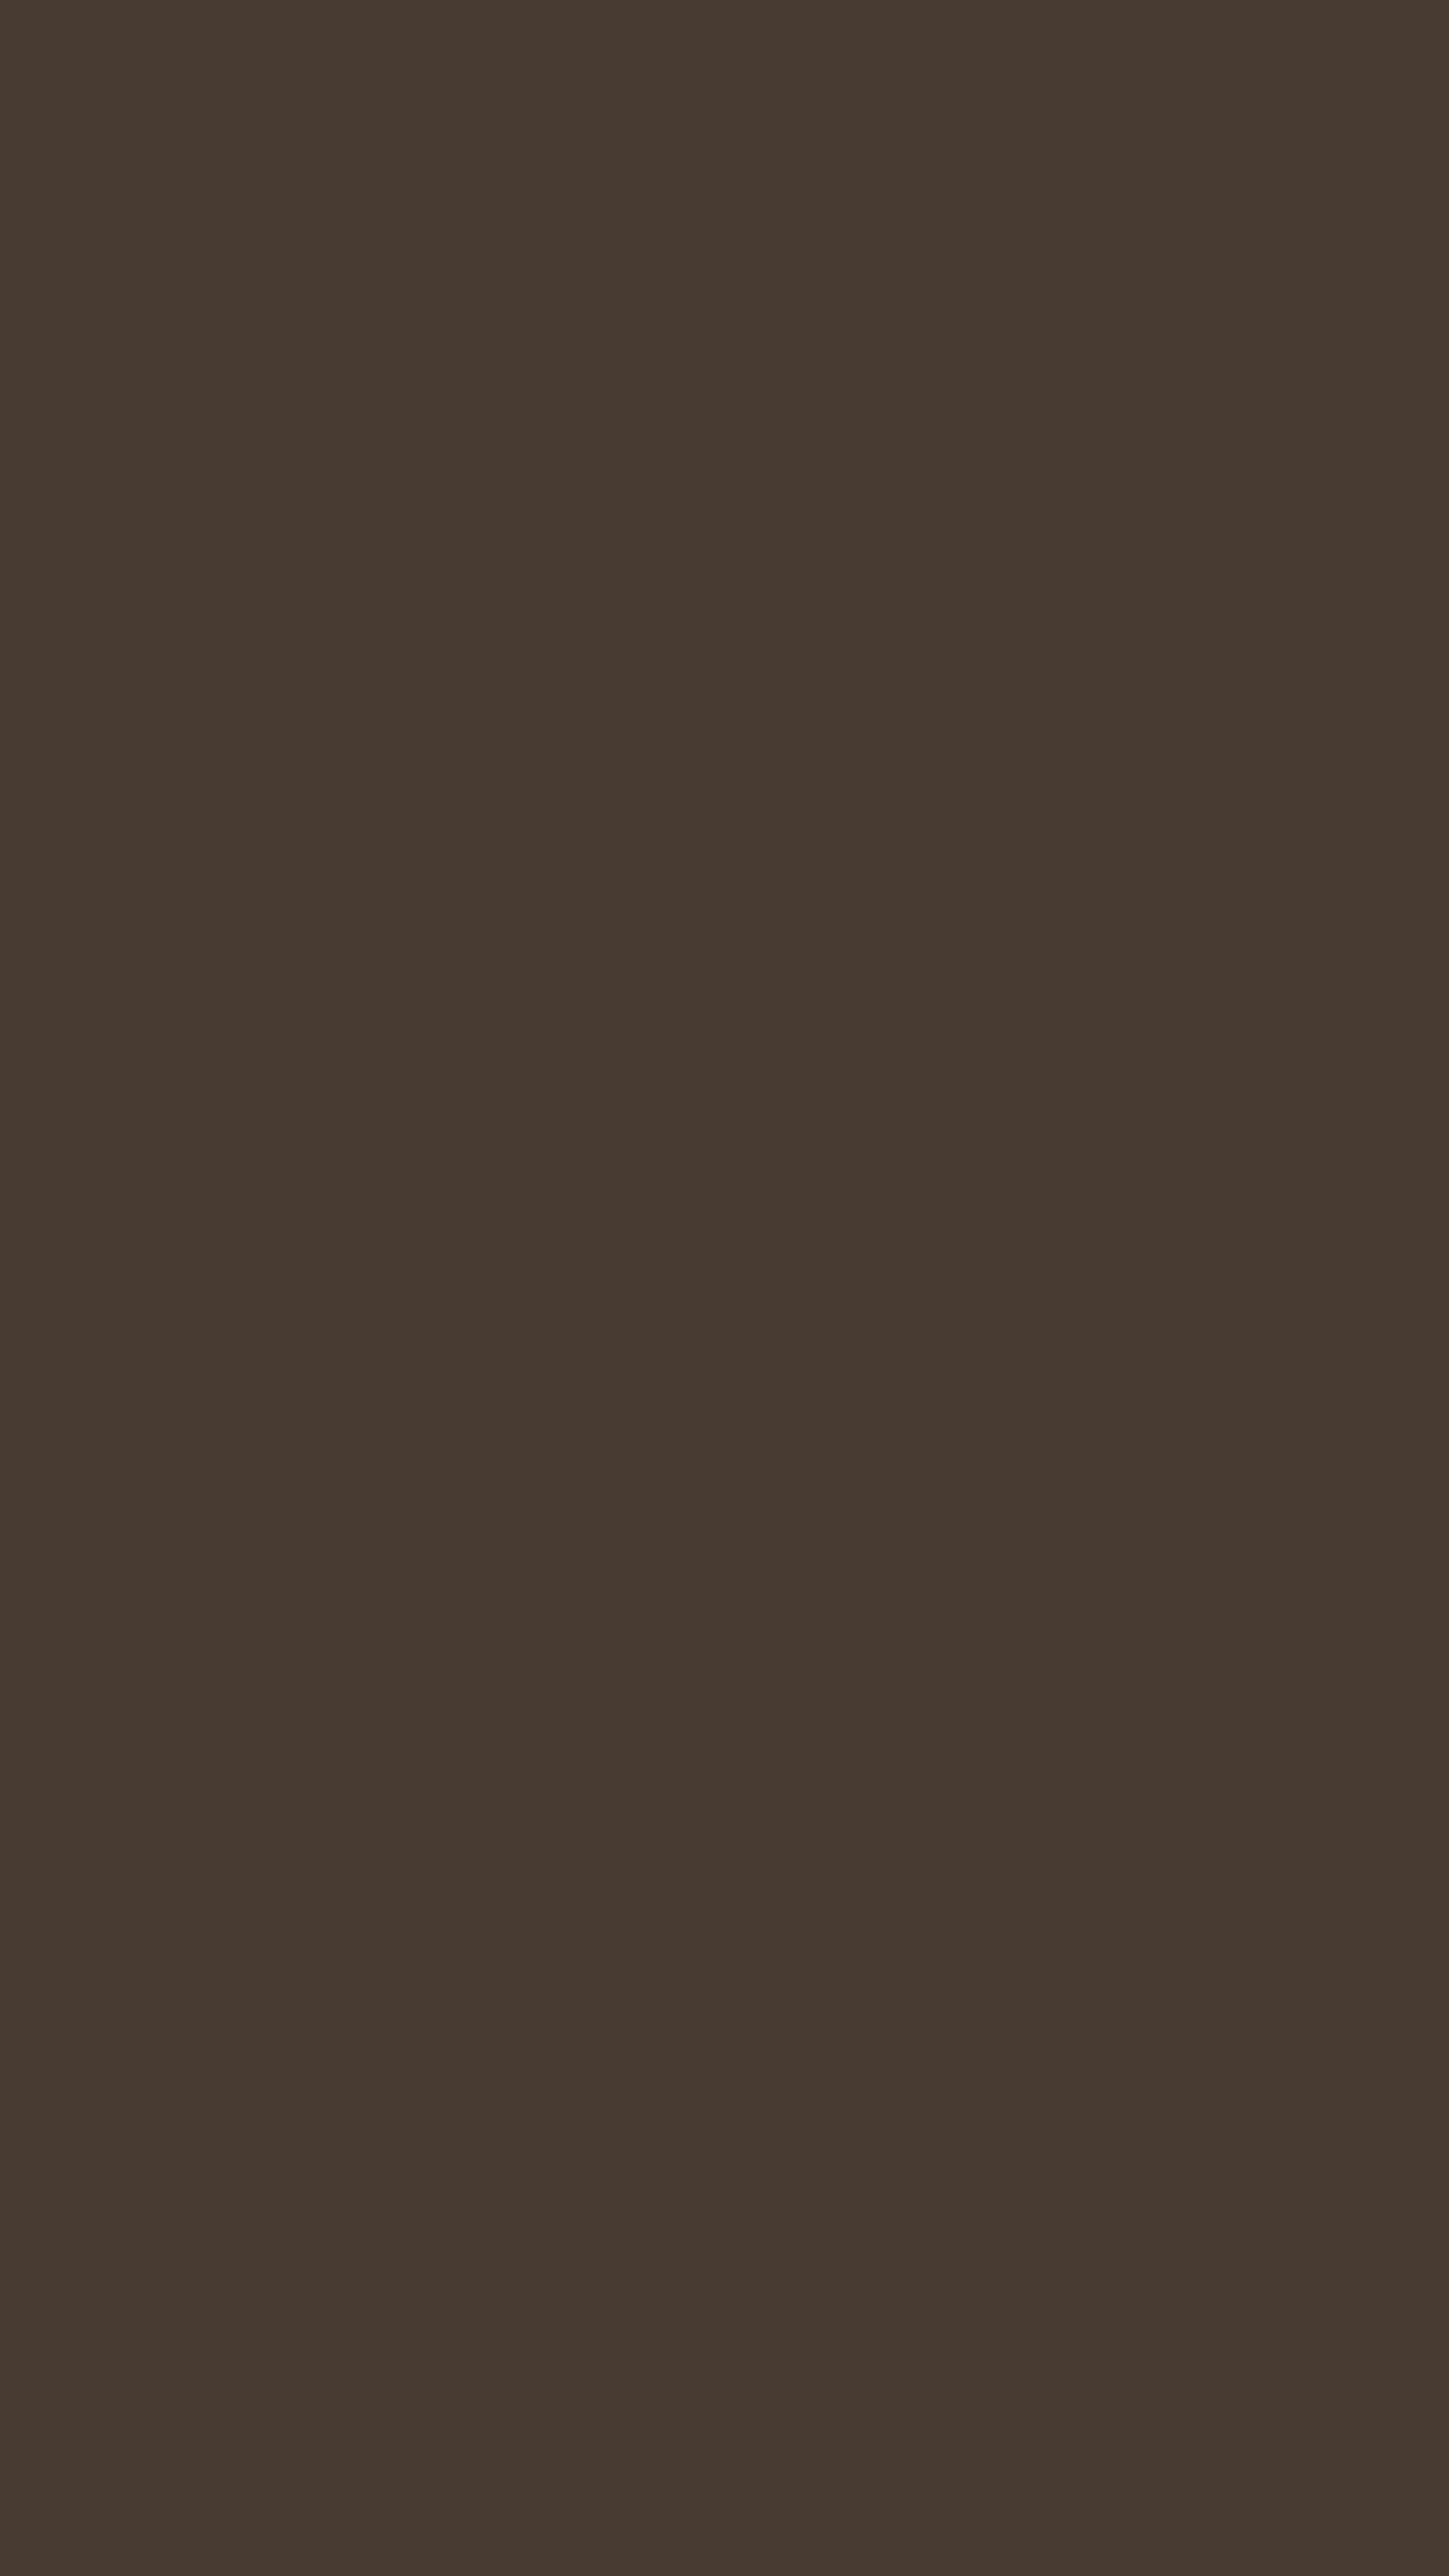 2160x3840 Taupe Solid Color Background Wallpaper for Mobile Phone